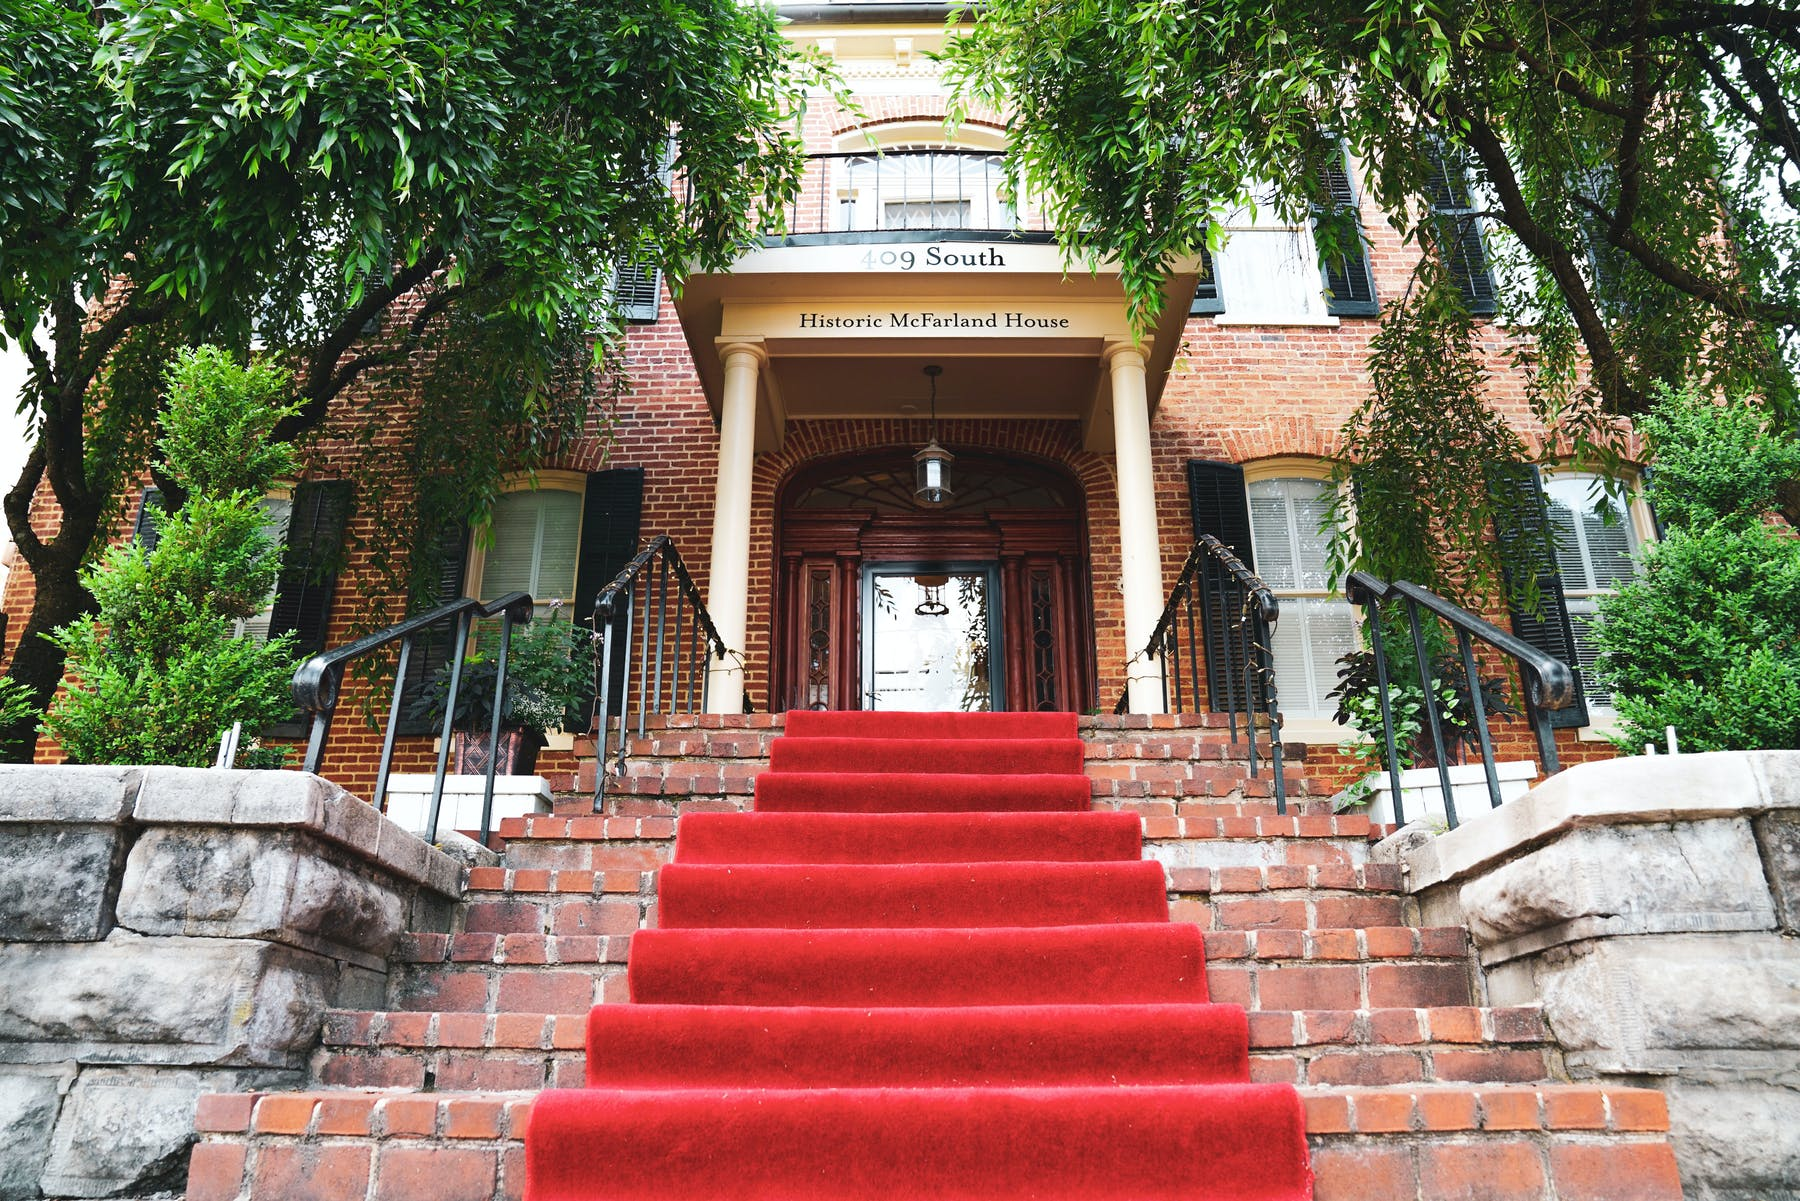 a brick staircase decorated with a red carpet